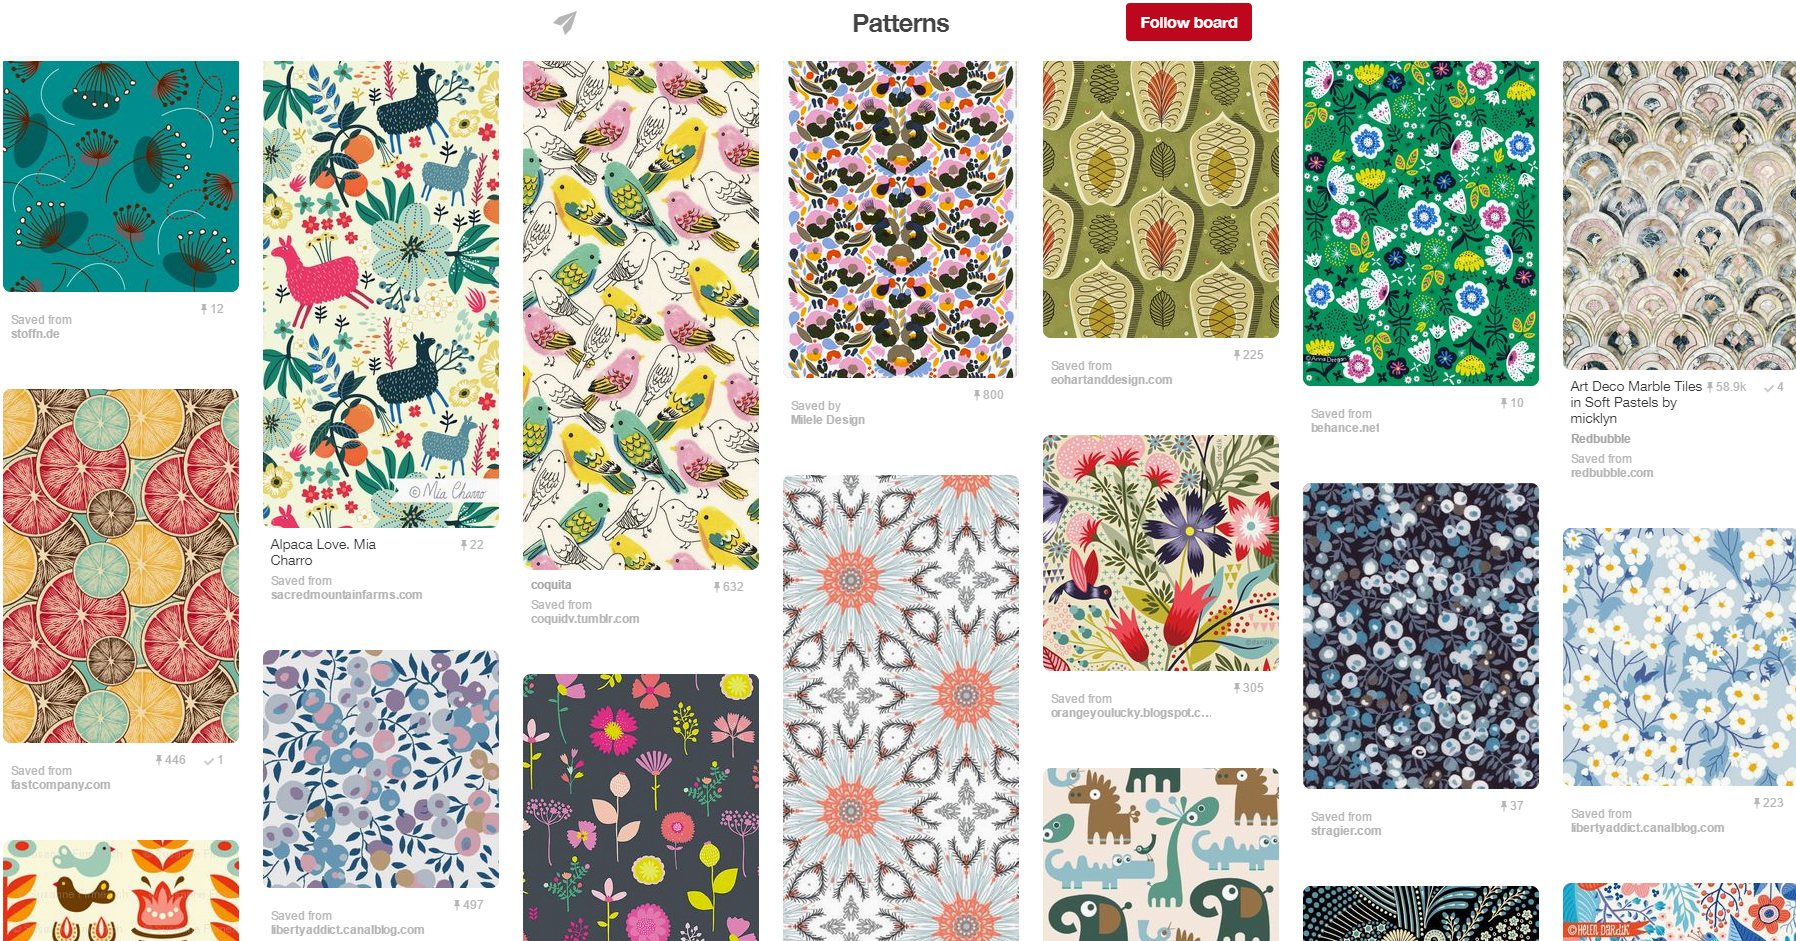 patterns-pinterest-board